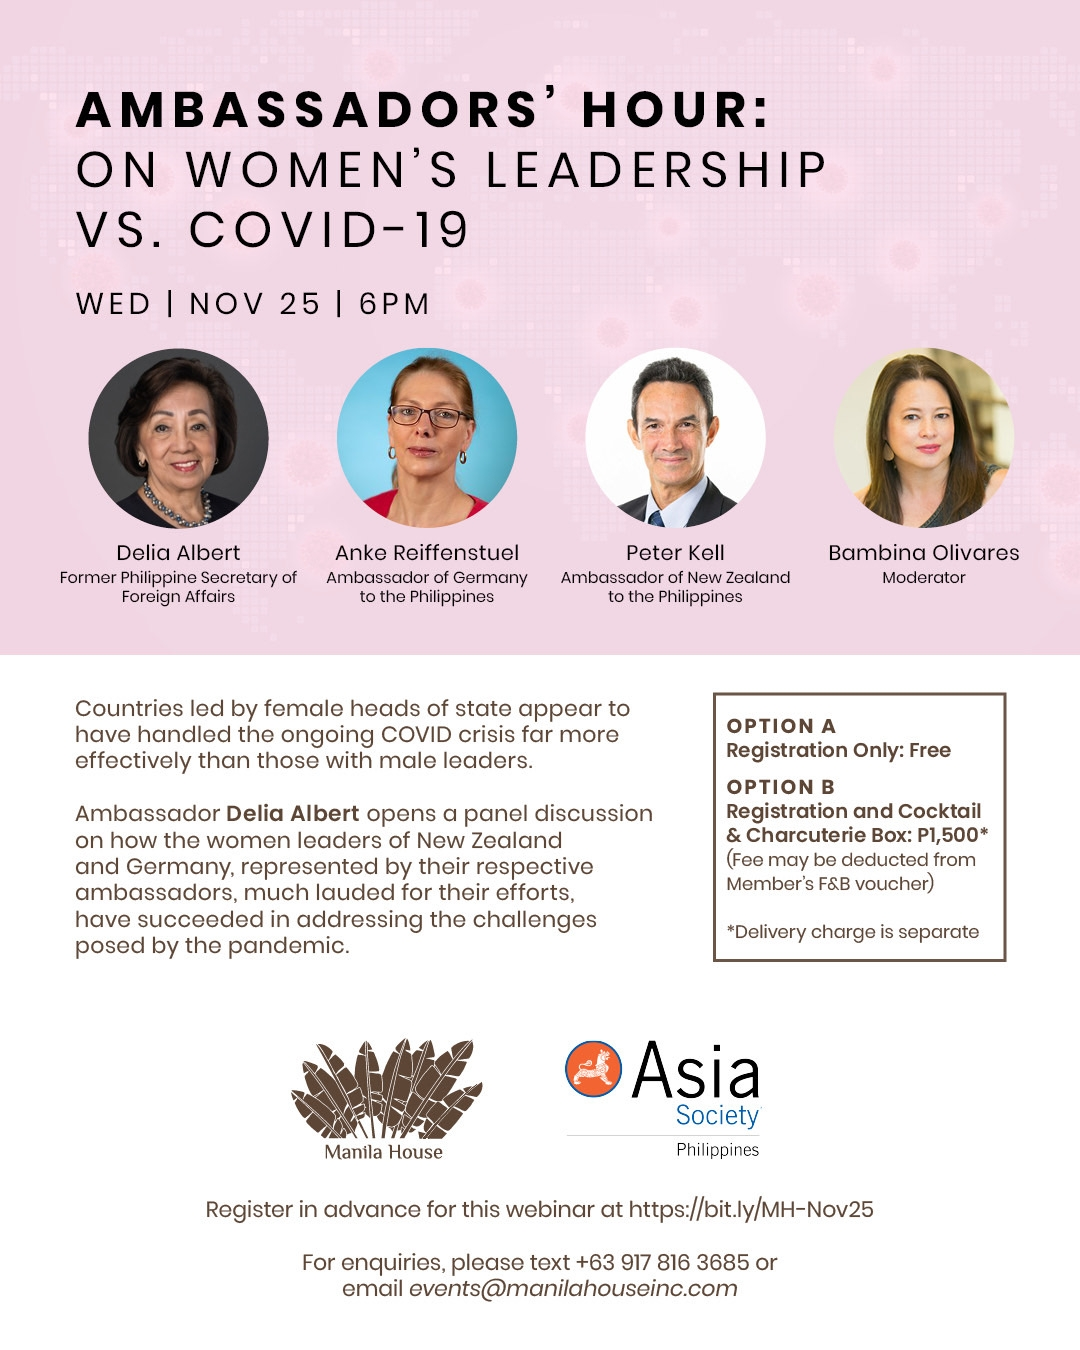 Ambassadors' Hour: Women Leaders and COVID-19